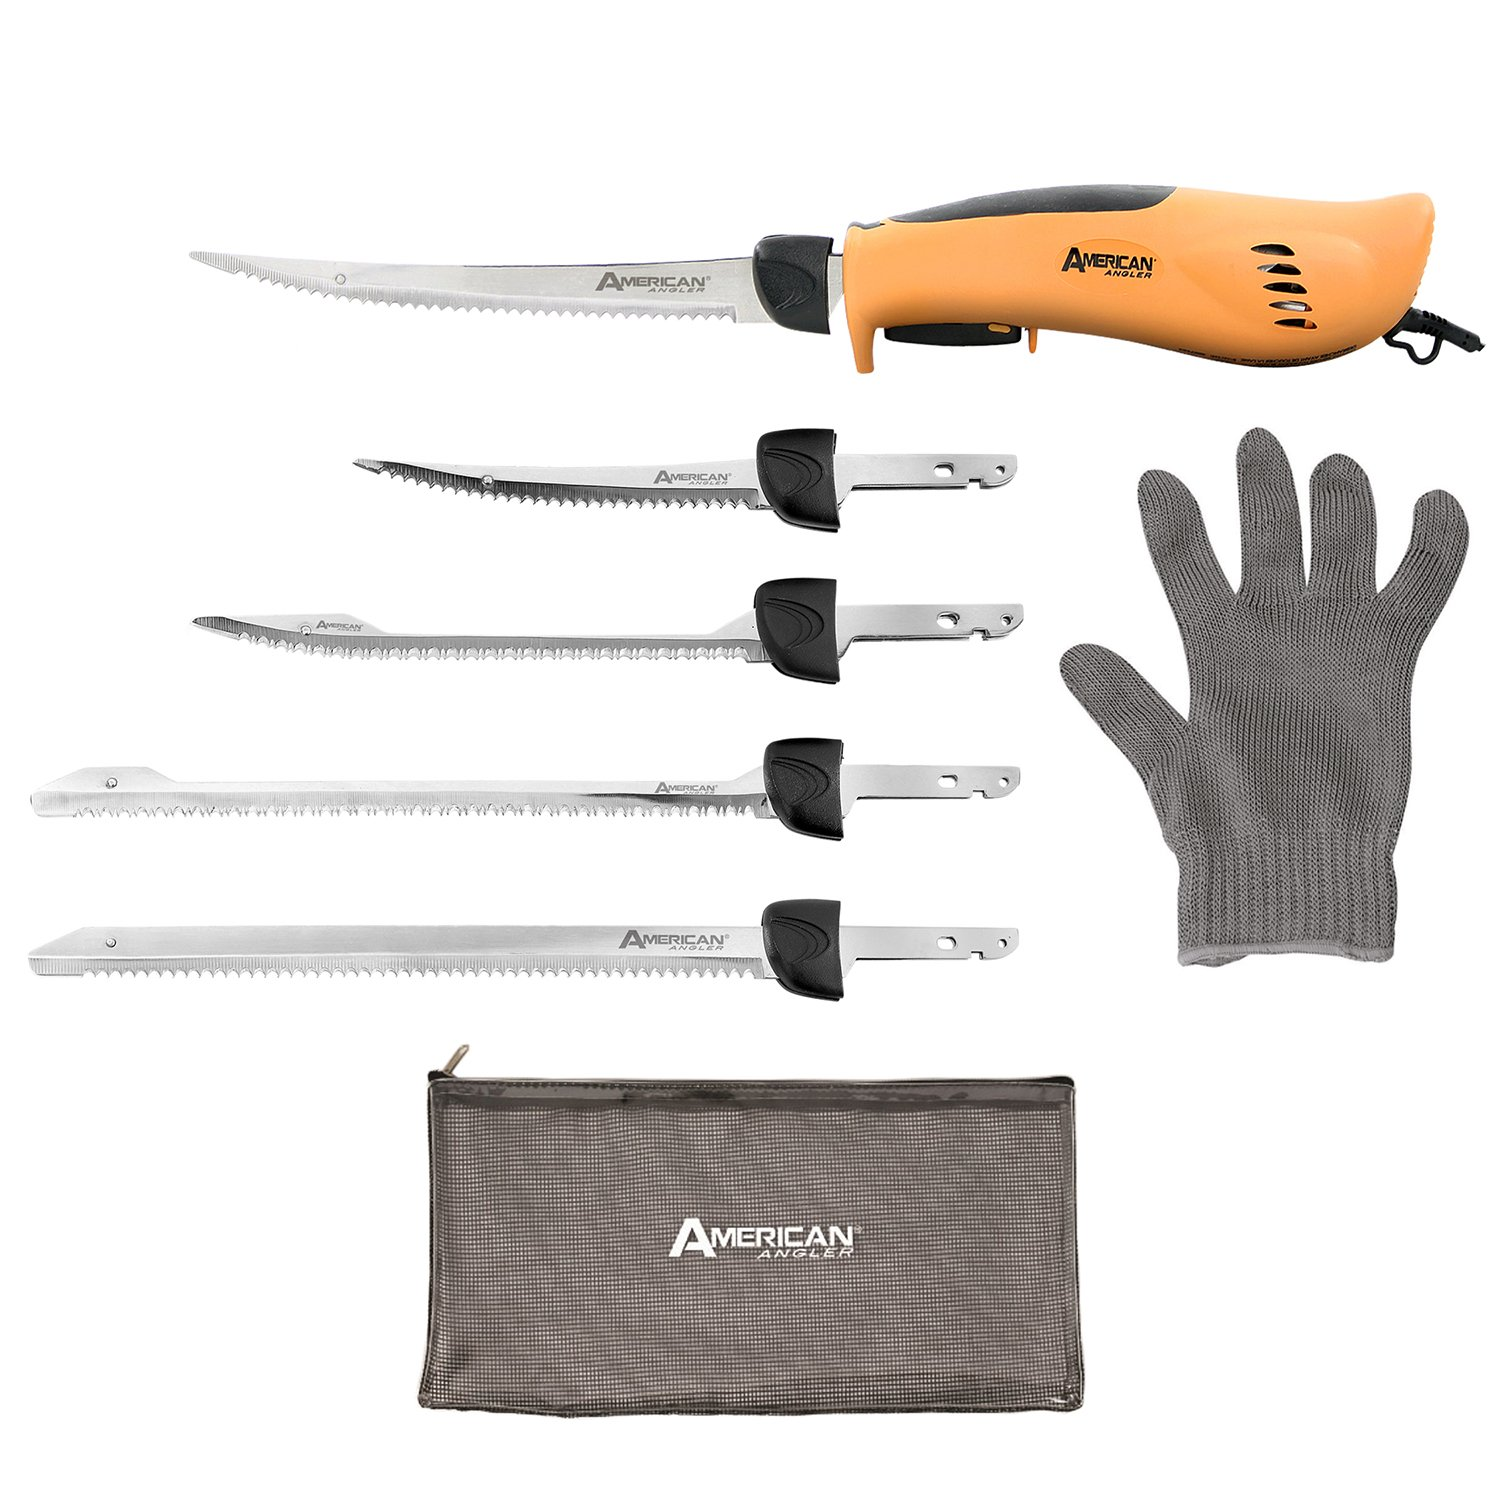 American Angler PRO Professional Grade Electric Fillet Knife Sportsmen's Kit – 110 Volt High Performance Ergonomic Motorized Handset with Five Kinds of Stainless Steel Blades, 32352DS by American Angler